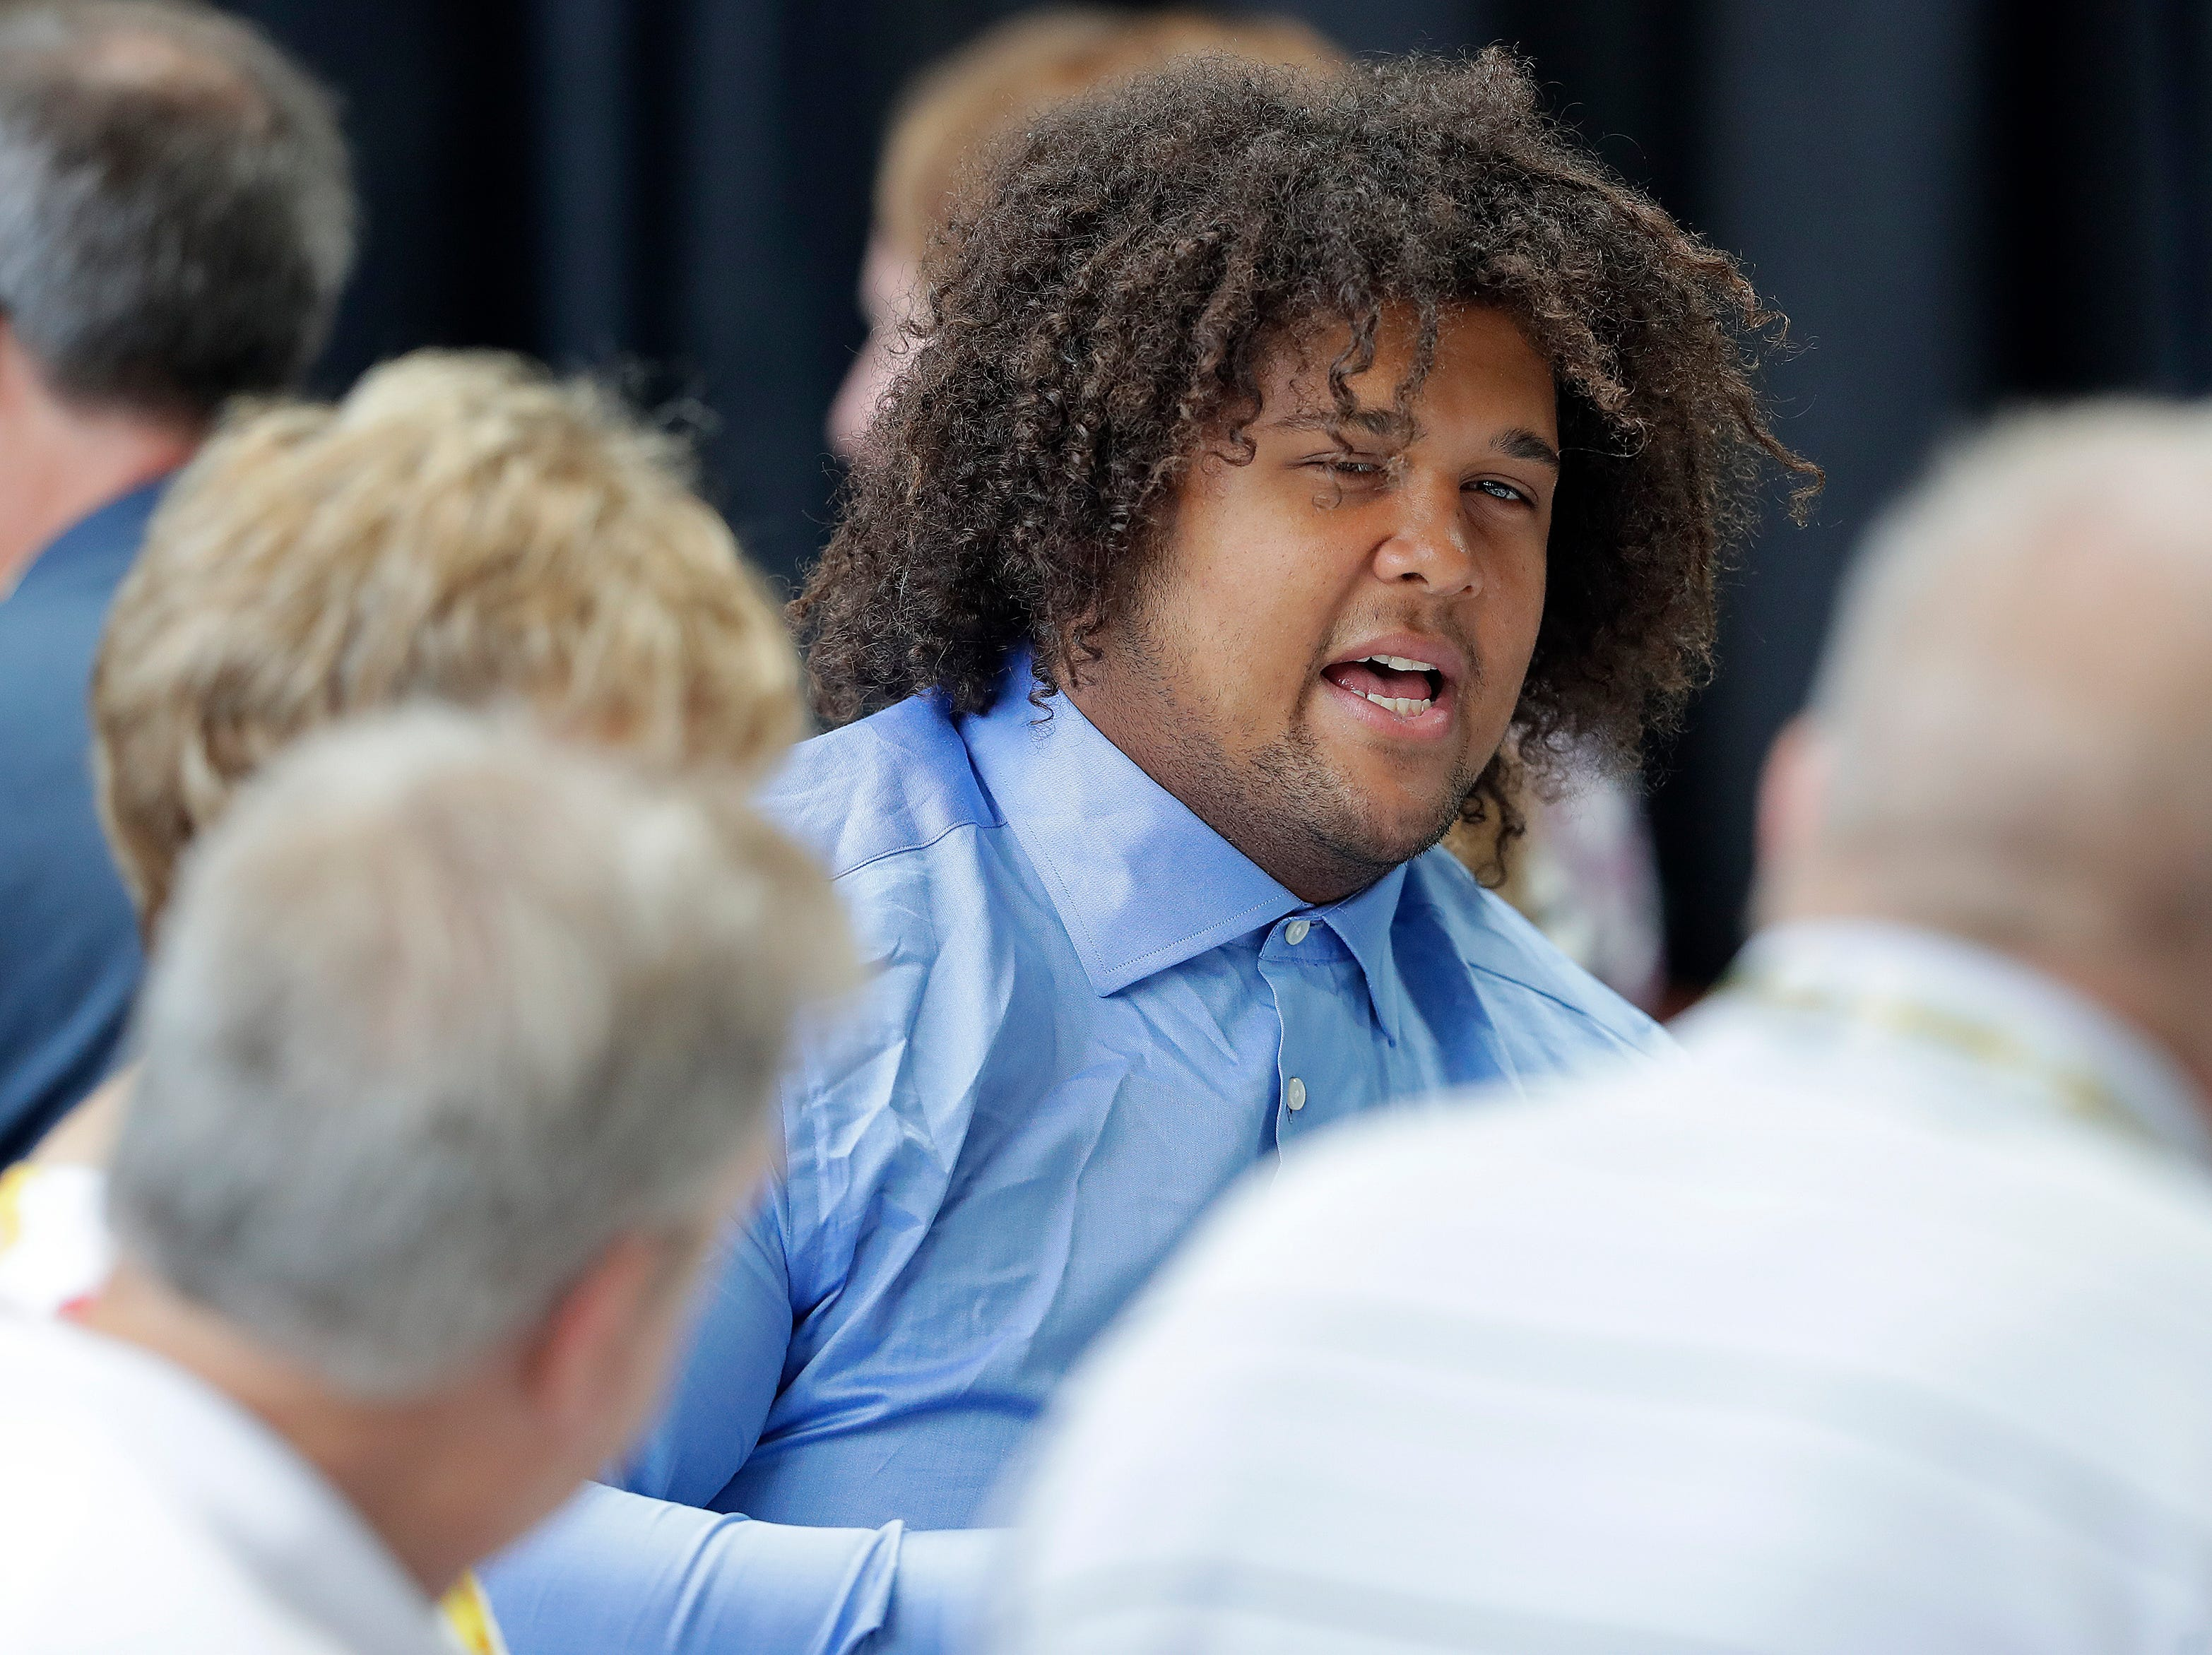 Green Bay Packers defensive end James Looney (99) chats during the Green Bay Chamber of Commerce Welcome Back Packers Luncheon at Lambeau Field Wednesday, August 29, 2018 in Green Bay, Wis.